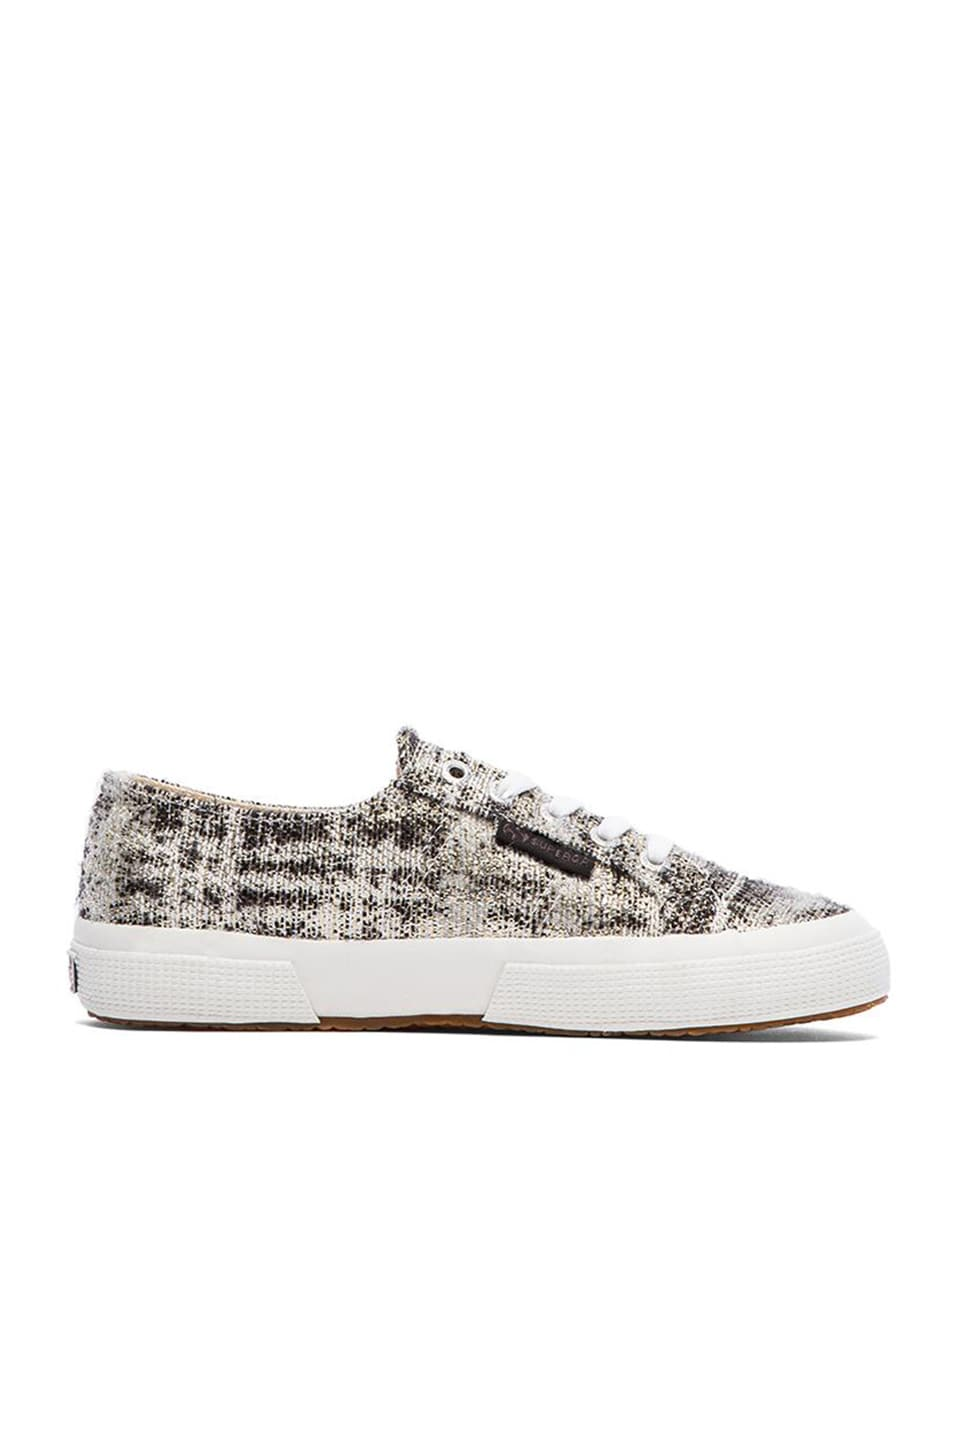 Superga Metallic Sneaker in Black